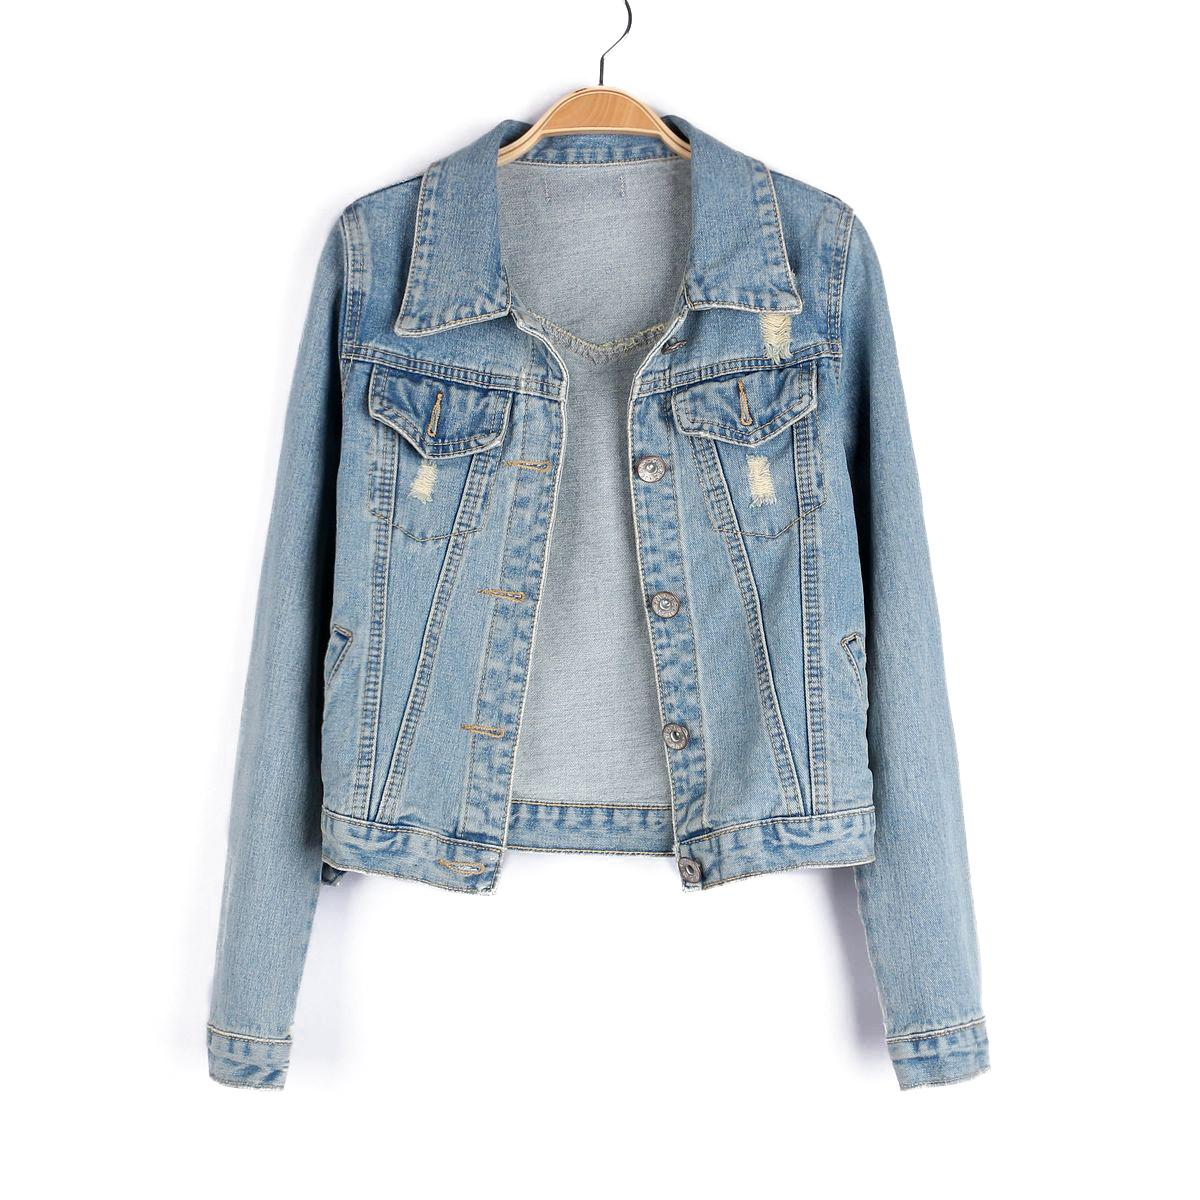 A denim jacket is the ultimate staple piece. No matter what trends come and go over the years, a good ole' denim jacket is a classic wardrobe essential that will always be in style. Perfect for transitioning into fall as we head into cooler weather, these jackets add an effortlessly cool layer to.